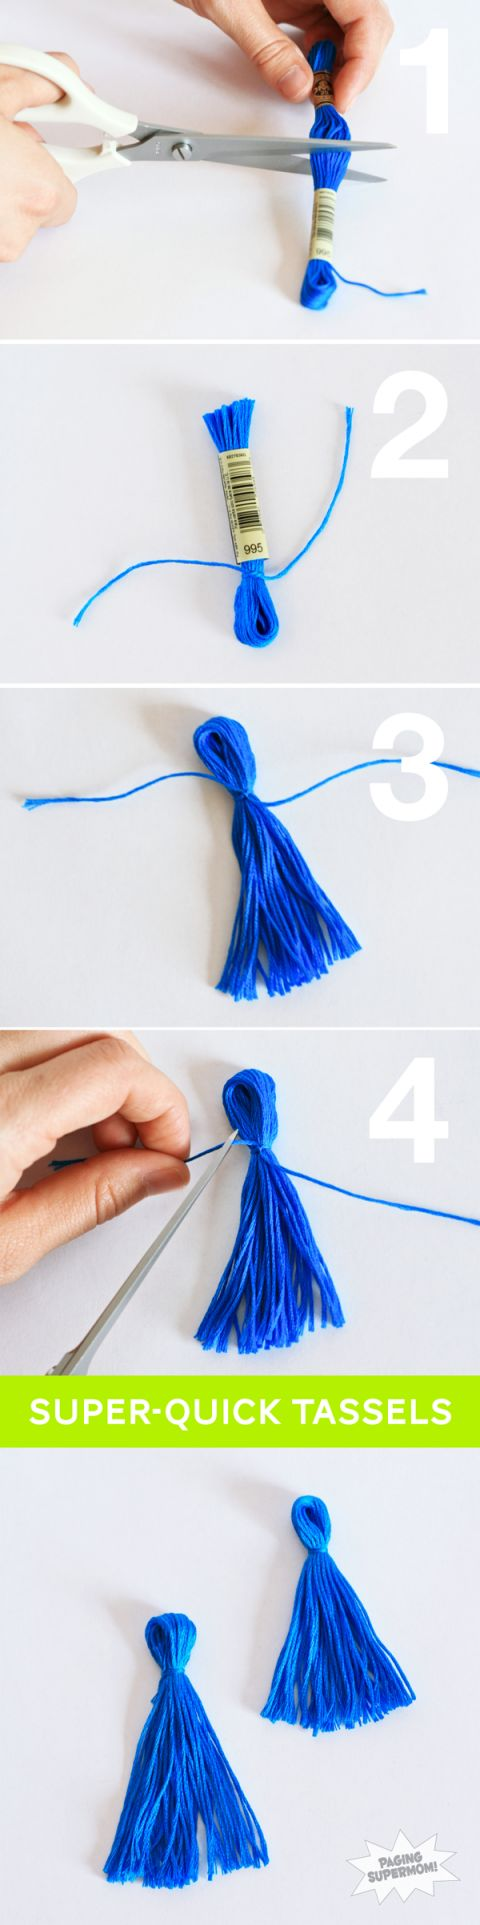 The Easiest Mini Tassels from Embroidery Floss -- Tutorial at PagingSupermom.com